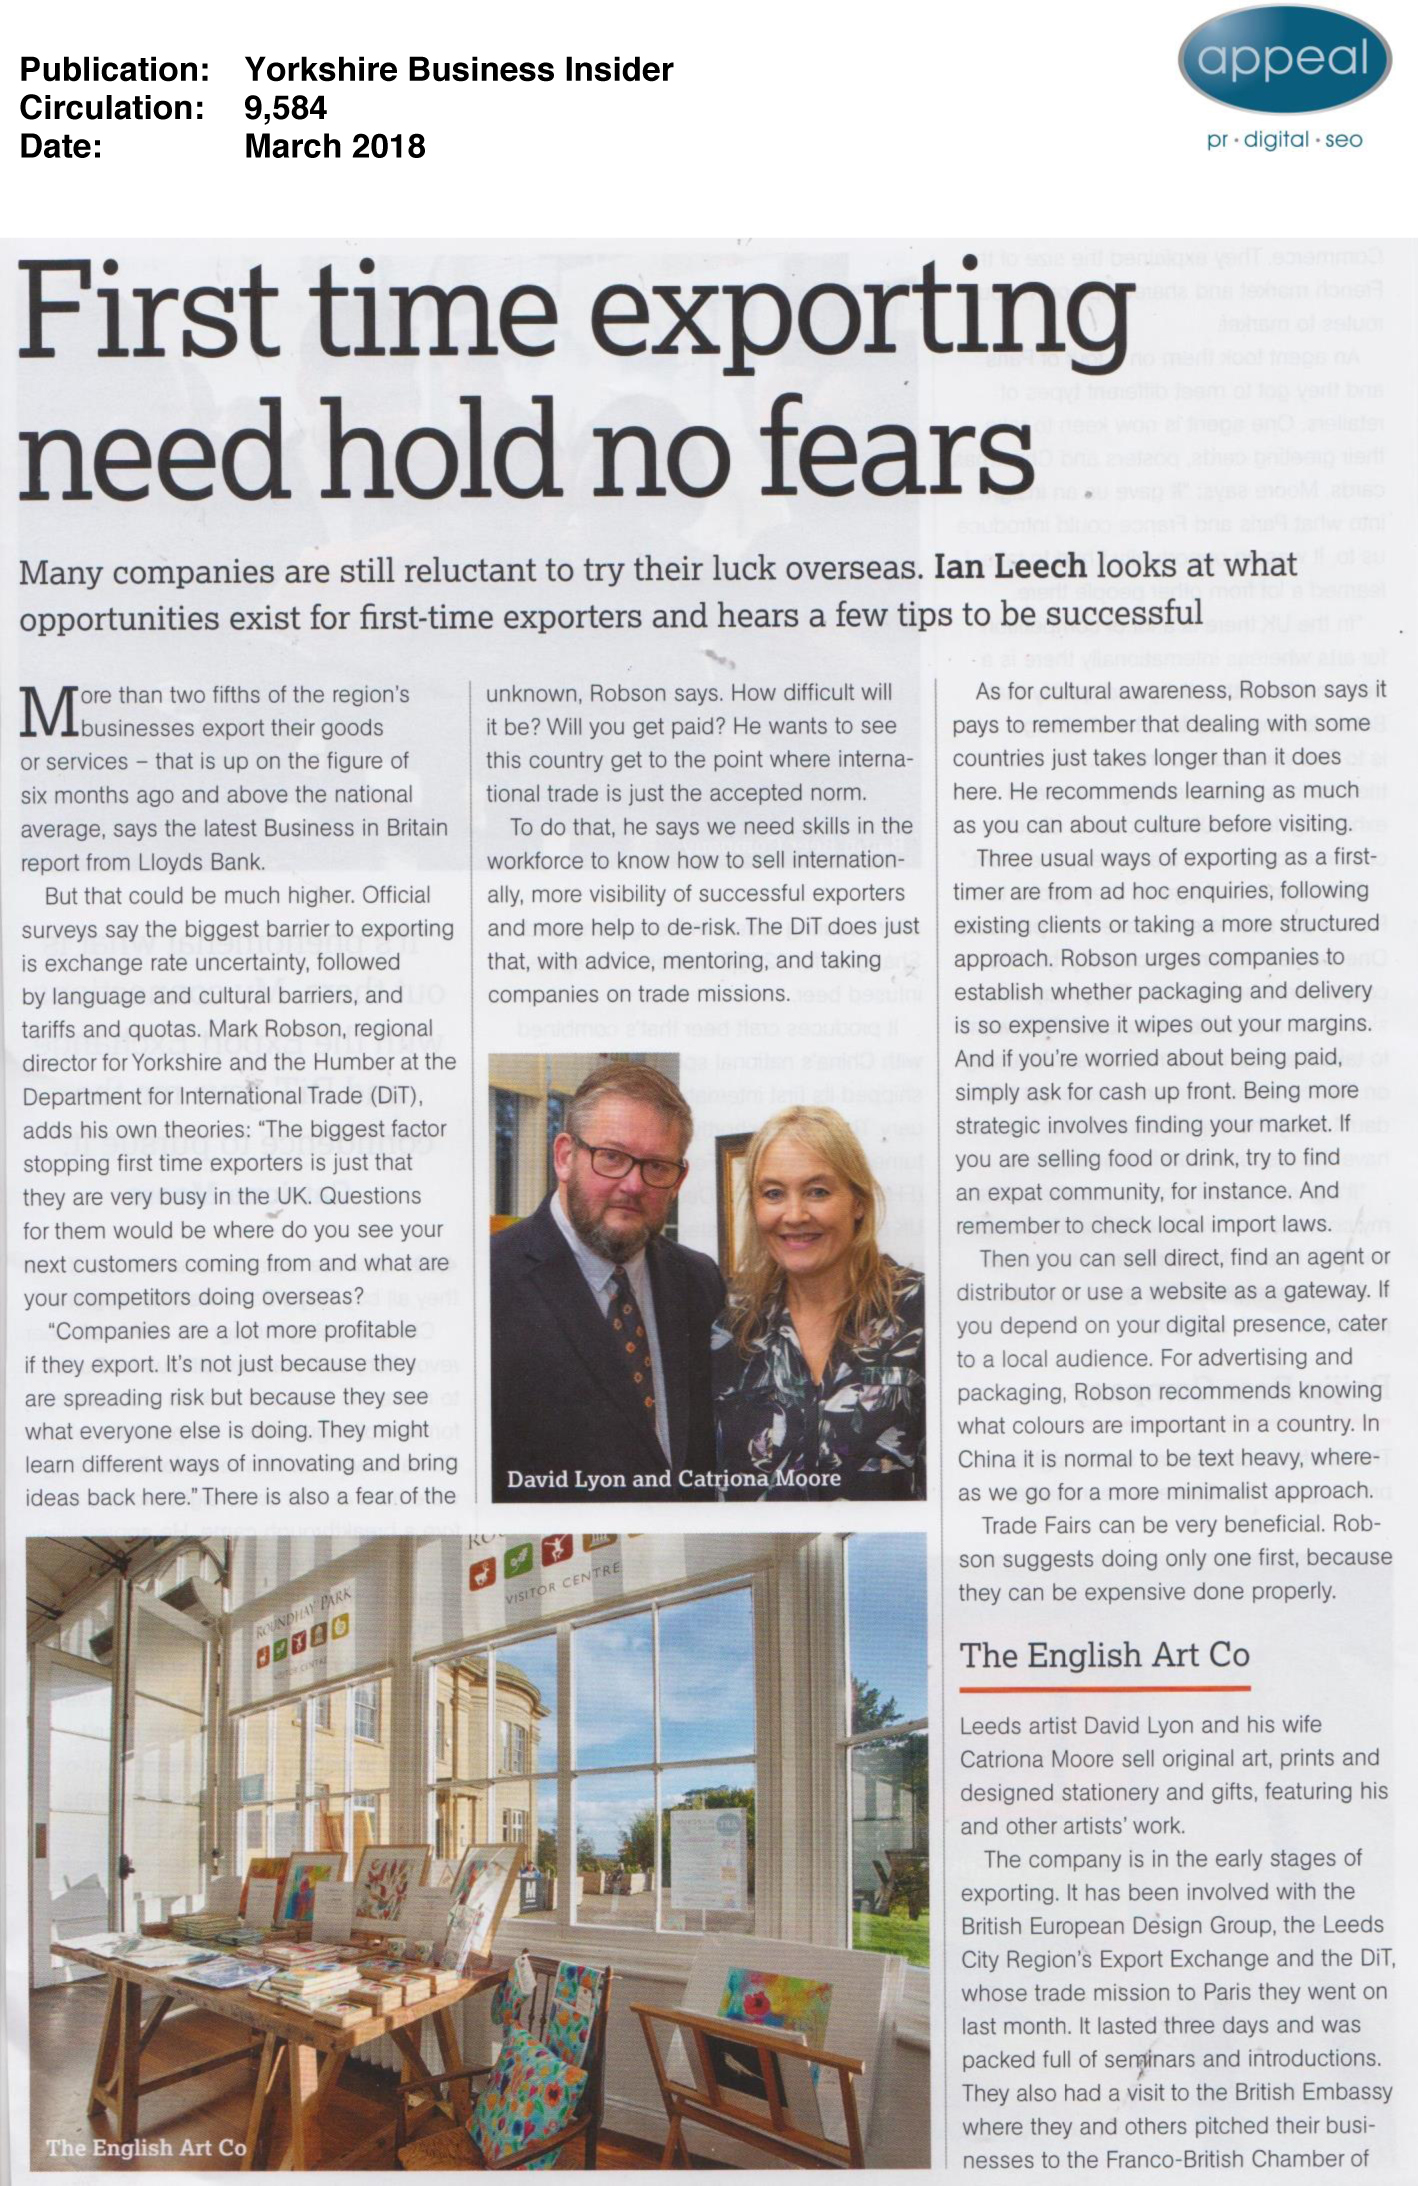 YORKSHIRE BUSINESS INSIDER - MARCH 2018 1/2